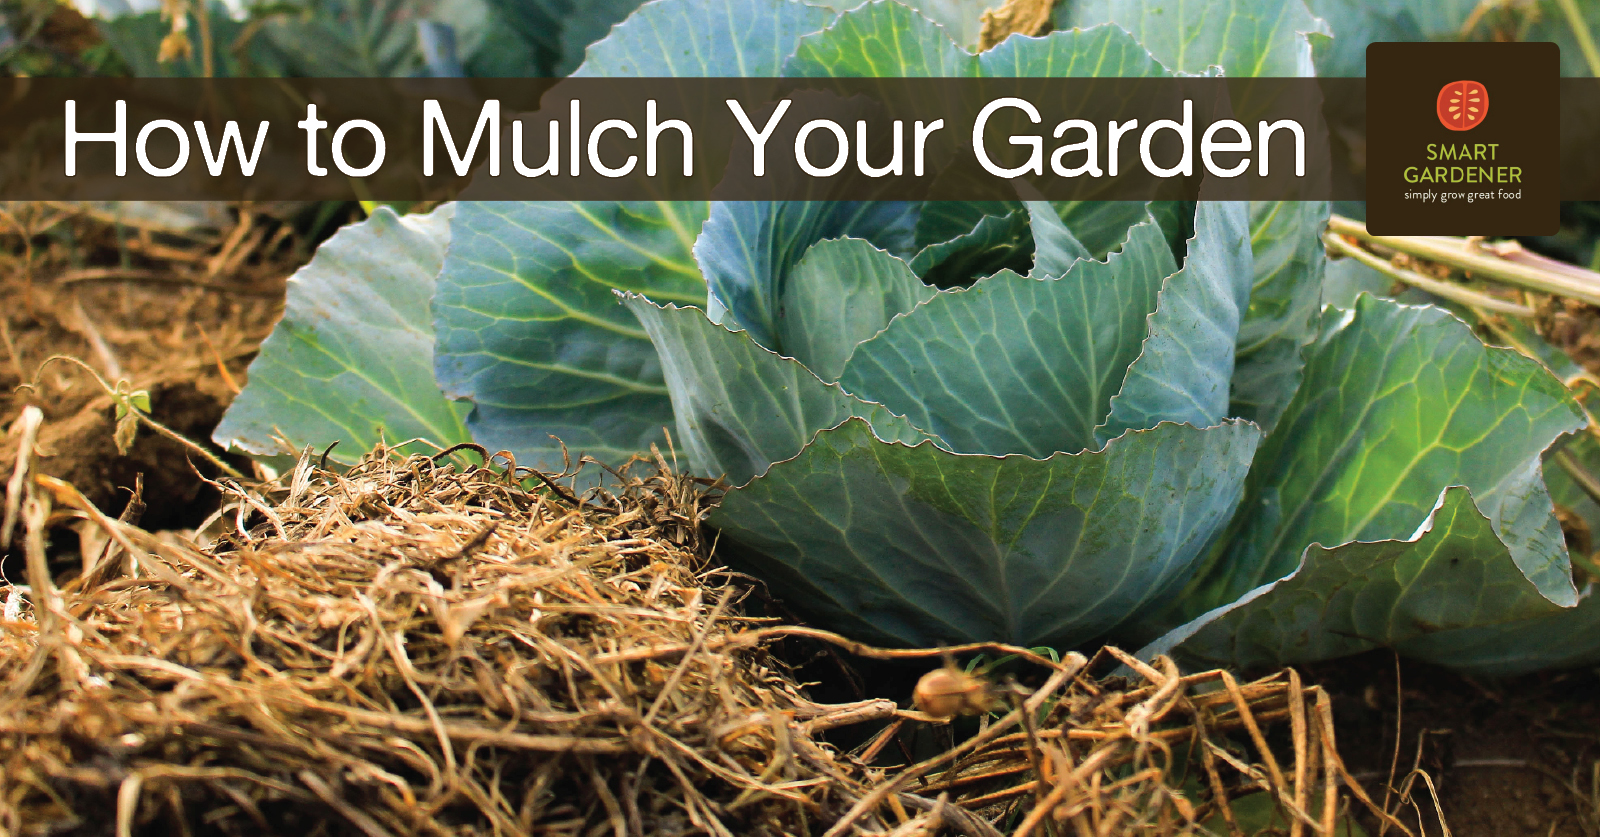 "Image of a cabbage with straw mulch around it, with the text ""How to Mulch Your Garden"" and the Smart Gardener logo"